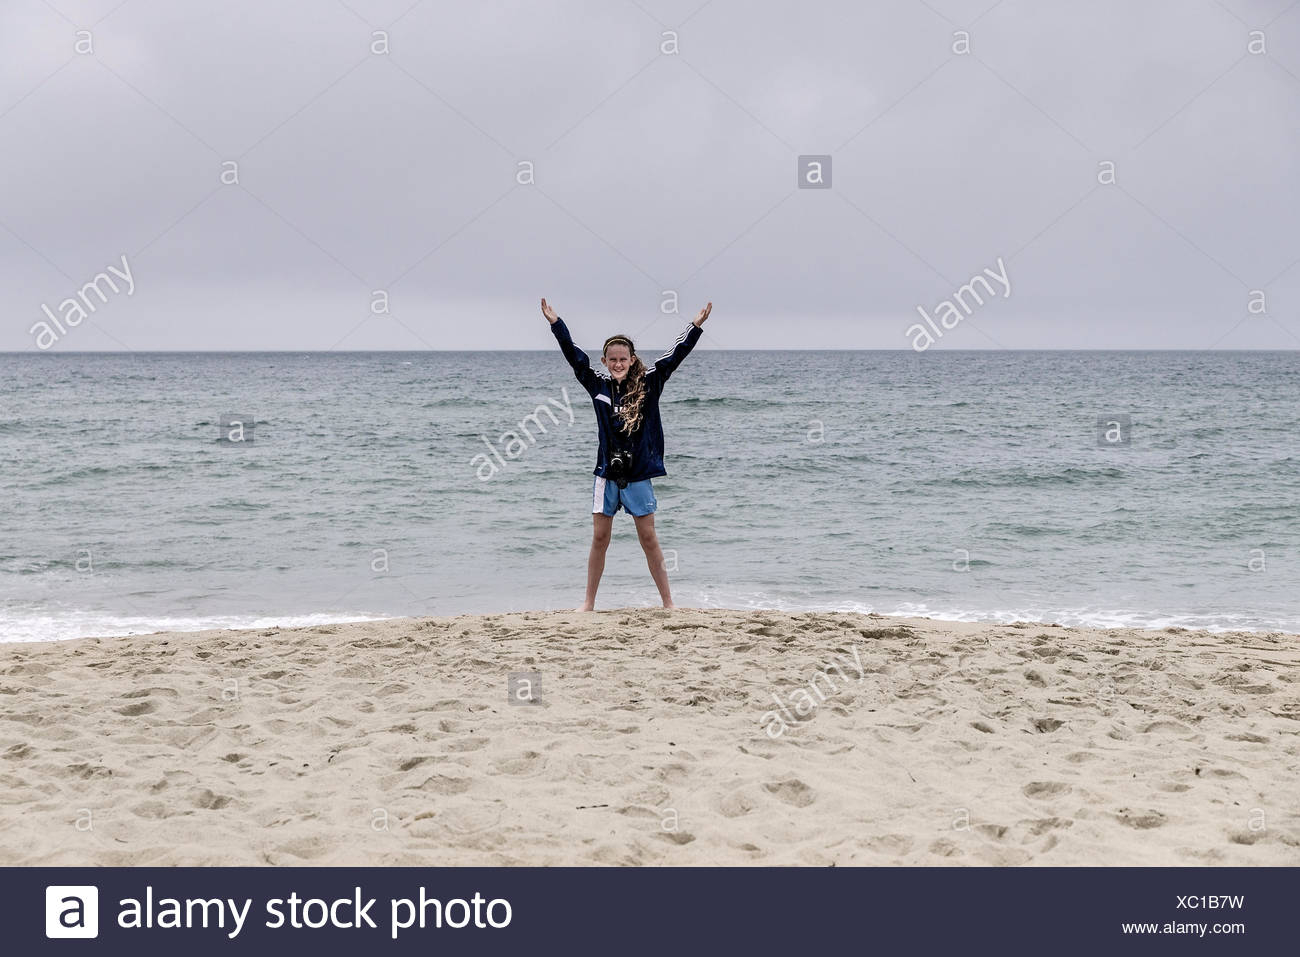 Joyous girl in bathing suit and open arms at the beach. - Stock Image